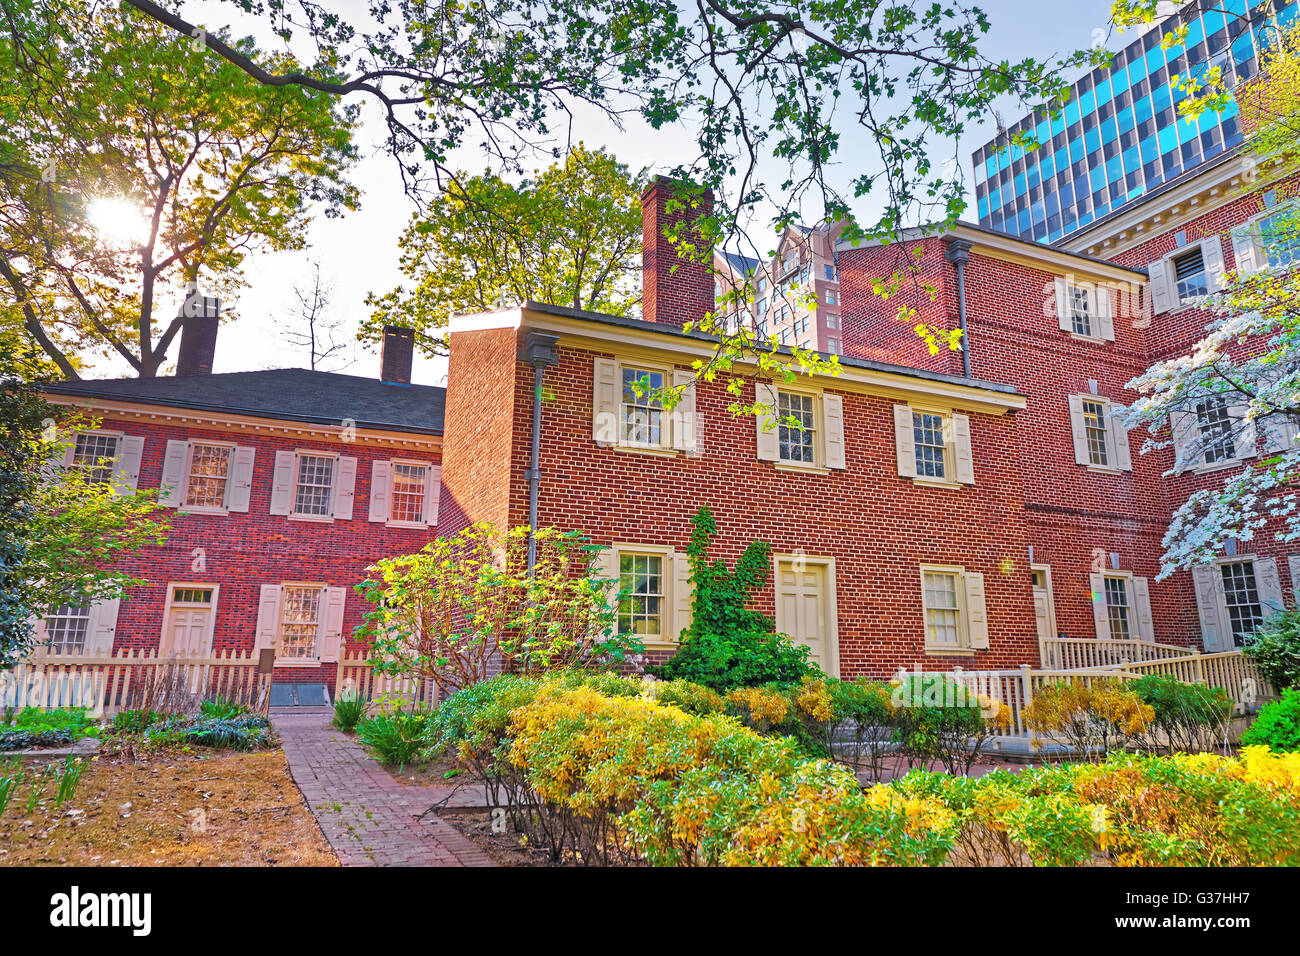 Pemberton House and Military Museum at New Hall at Chestnut Street in Philadelphia, Pennsylvania, the USA. They - Stock Image